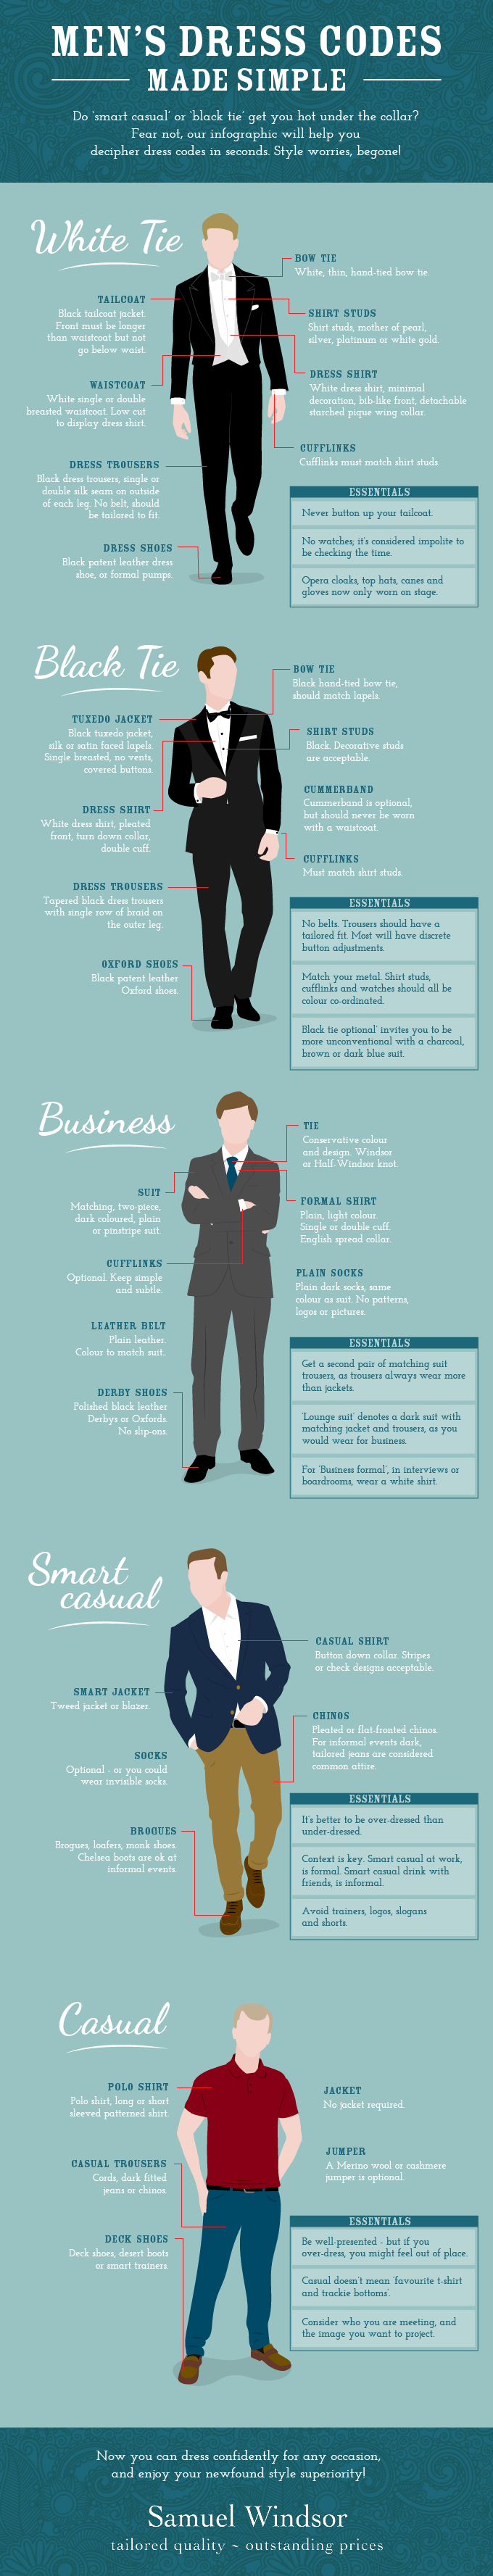 mens-dress-code-infographic